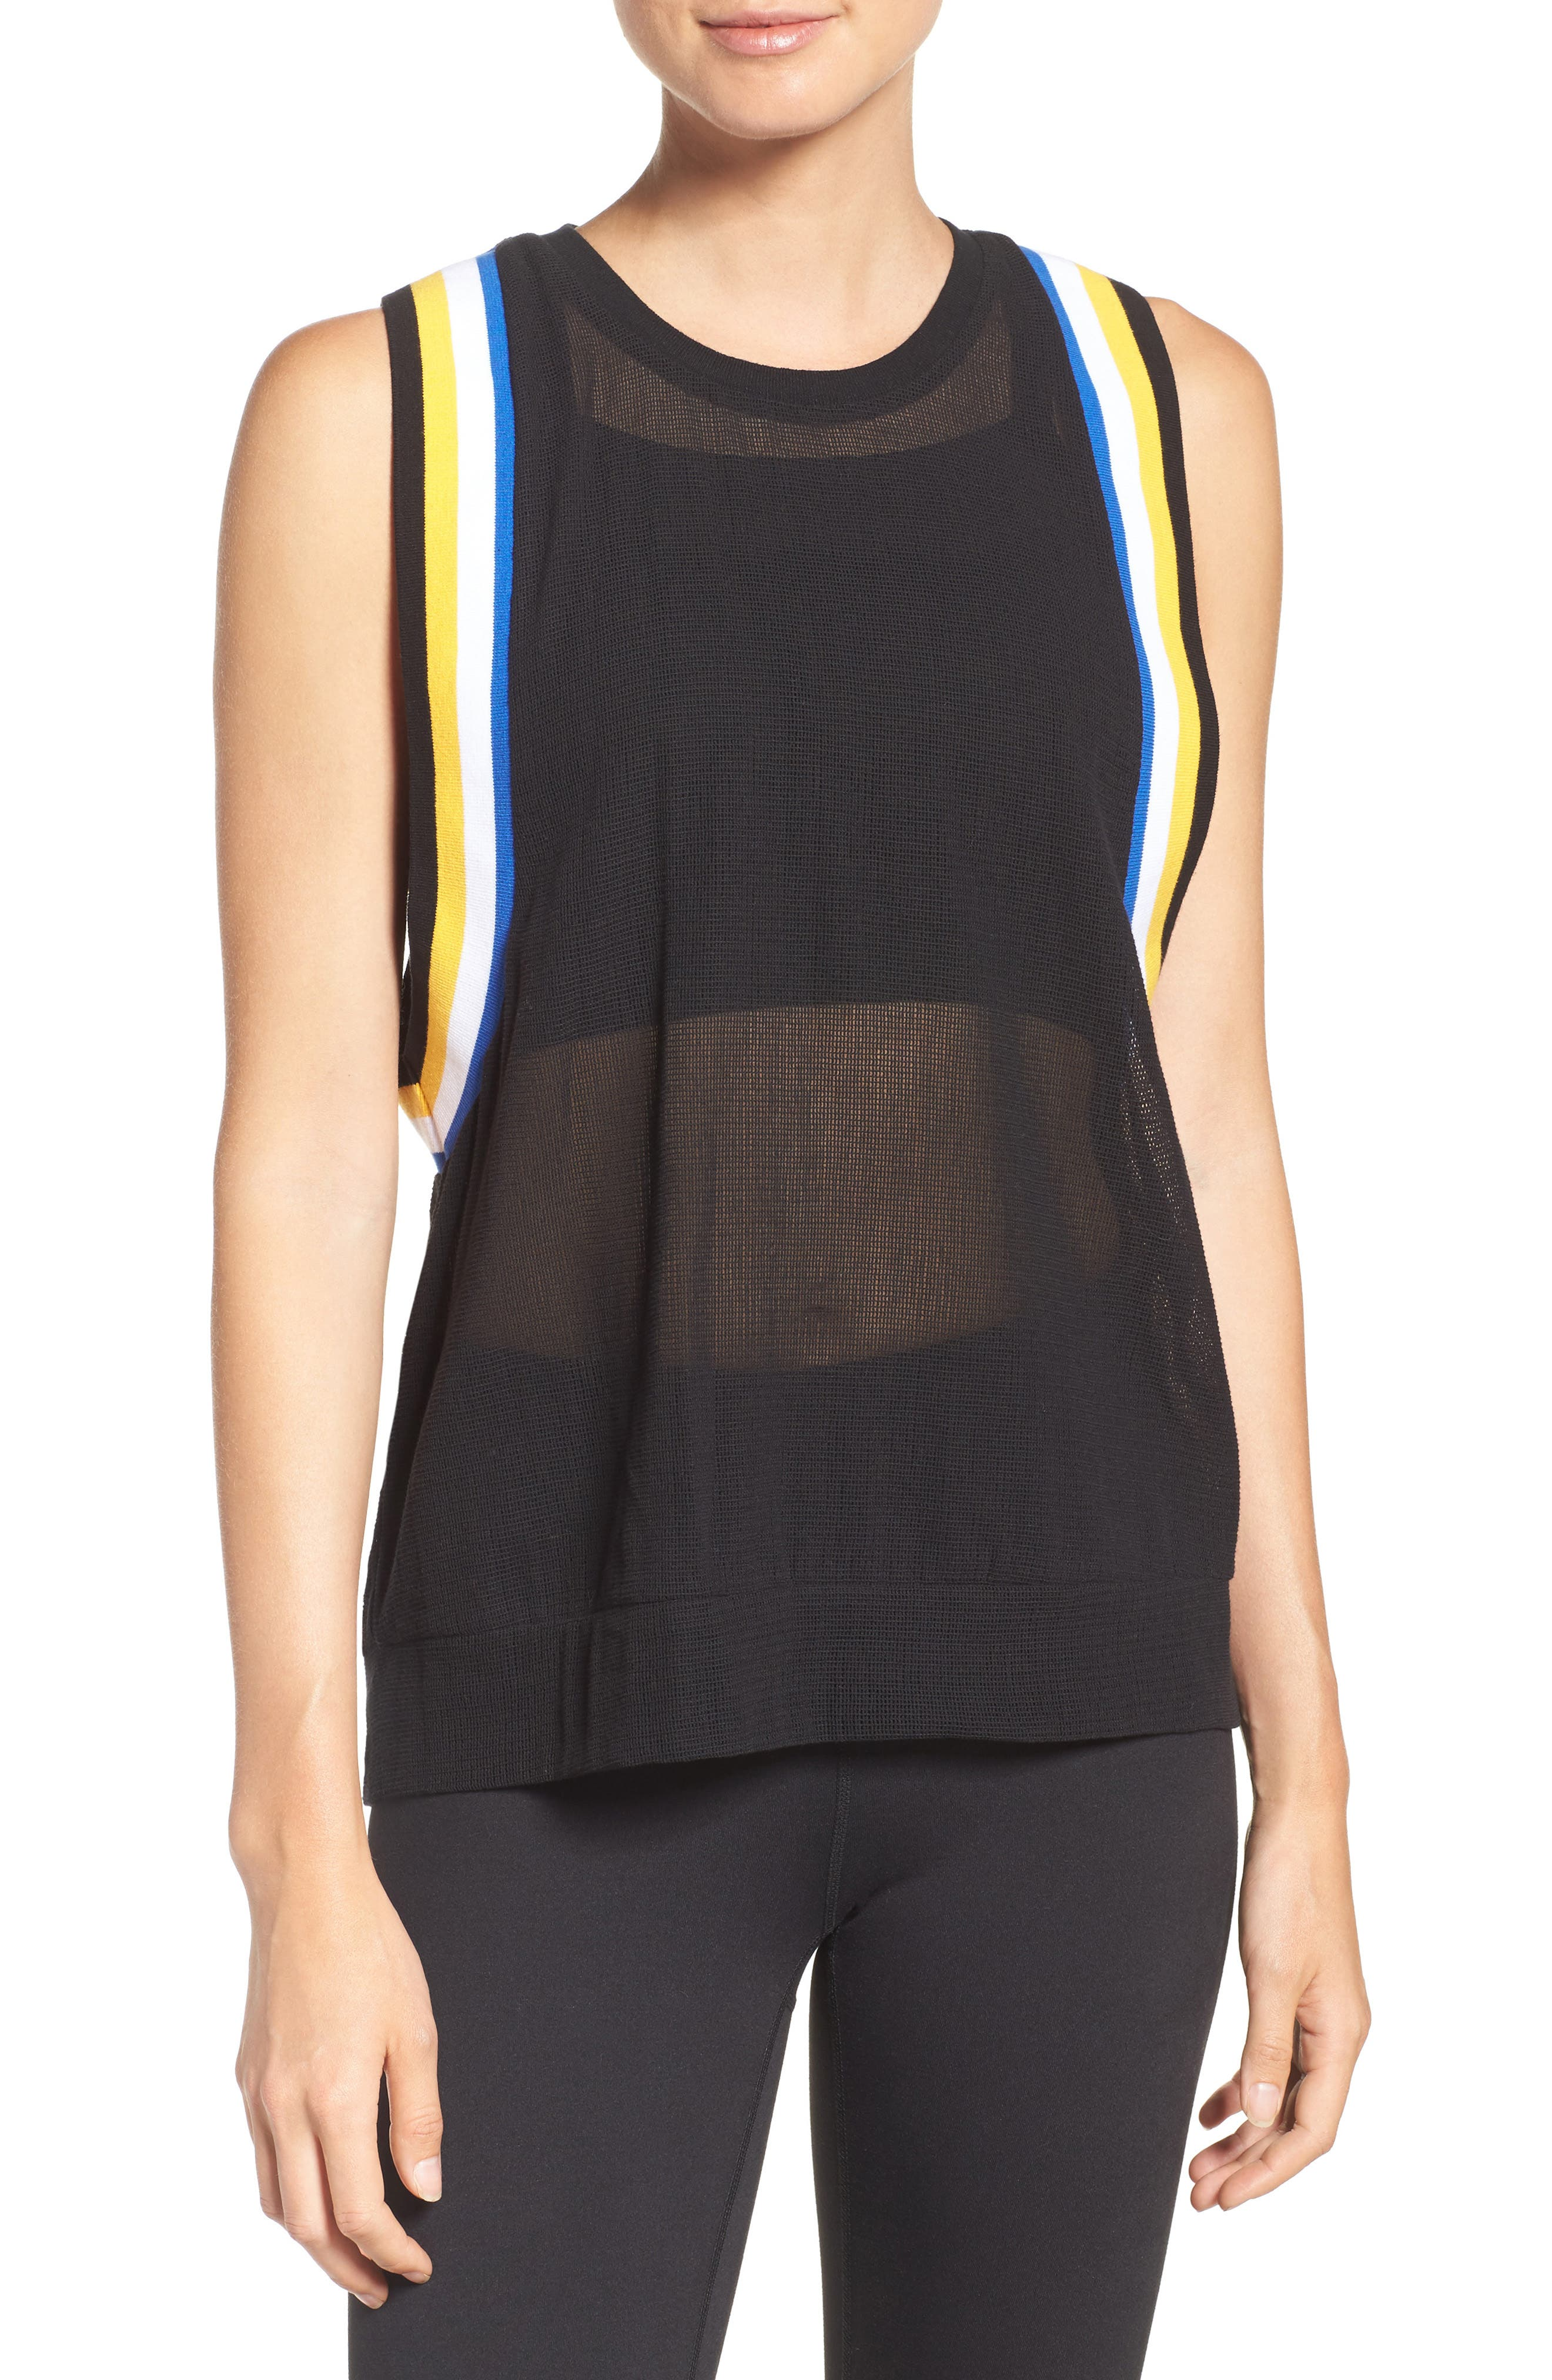 P.E. Nation Fast Ball Mesh Tank,                             Main thumbnail 1, color,                             Black/ Multi